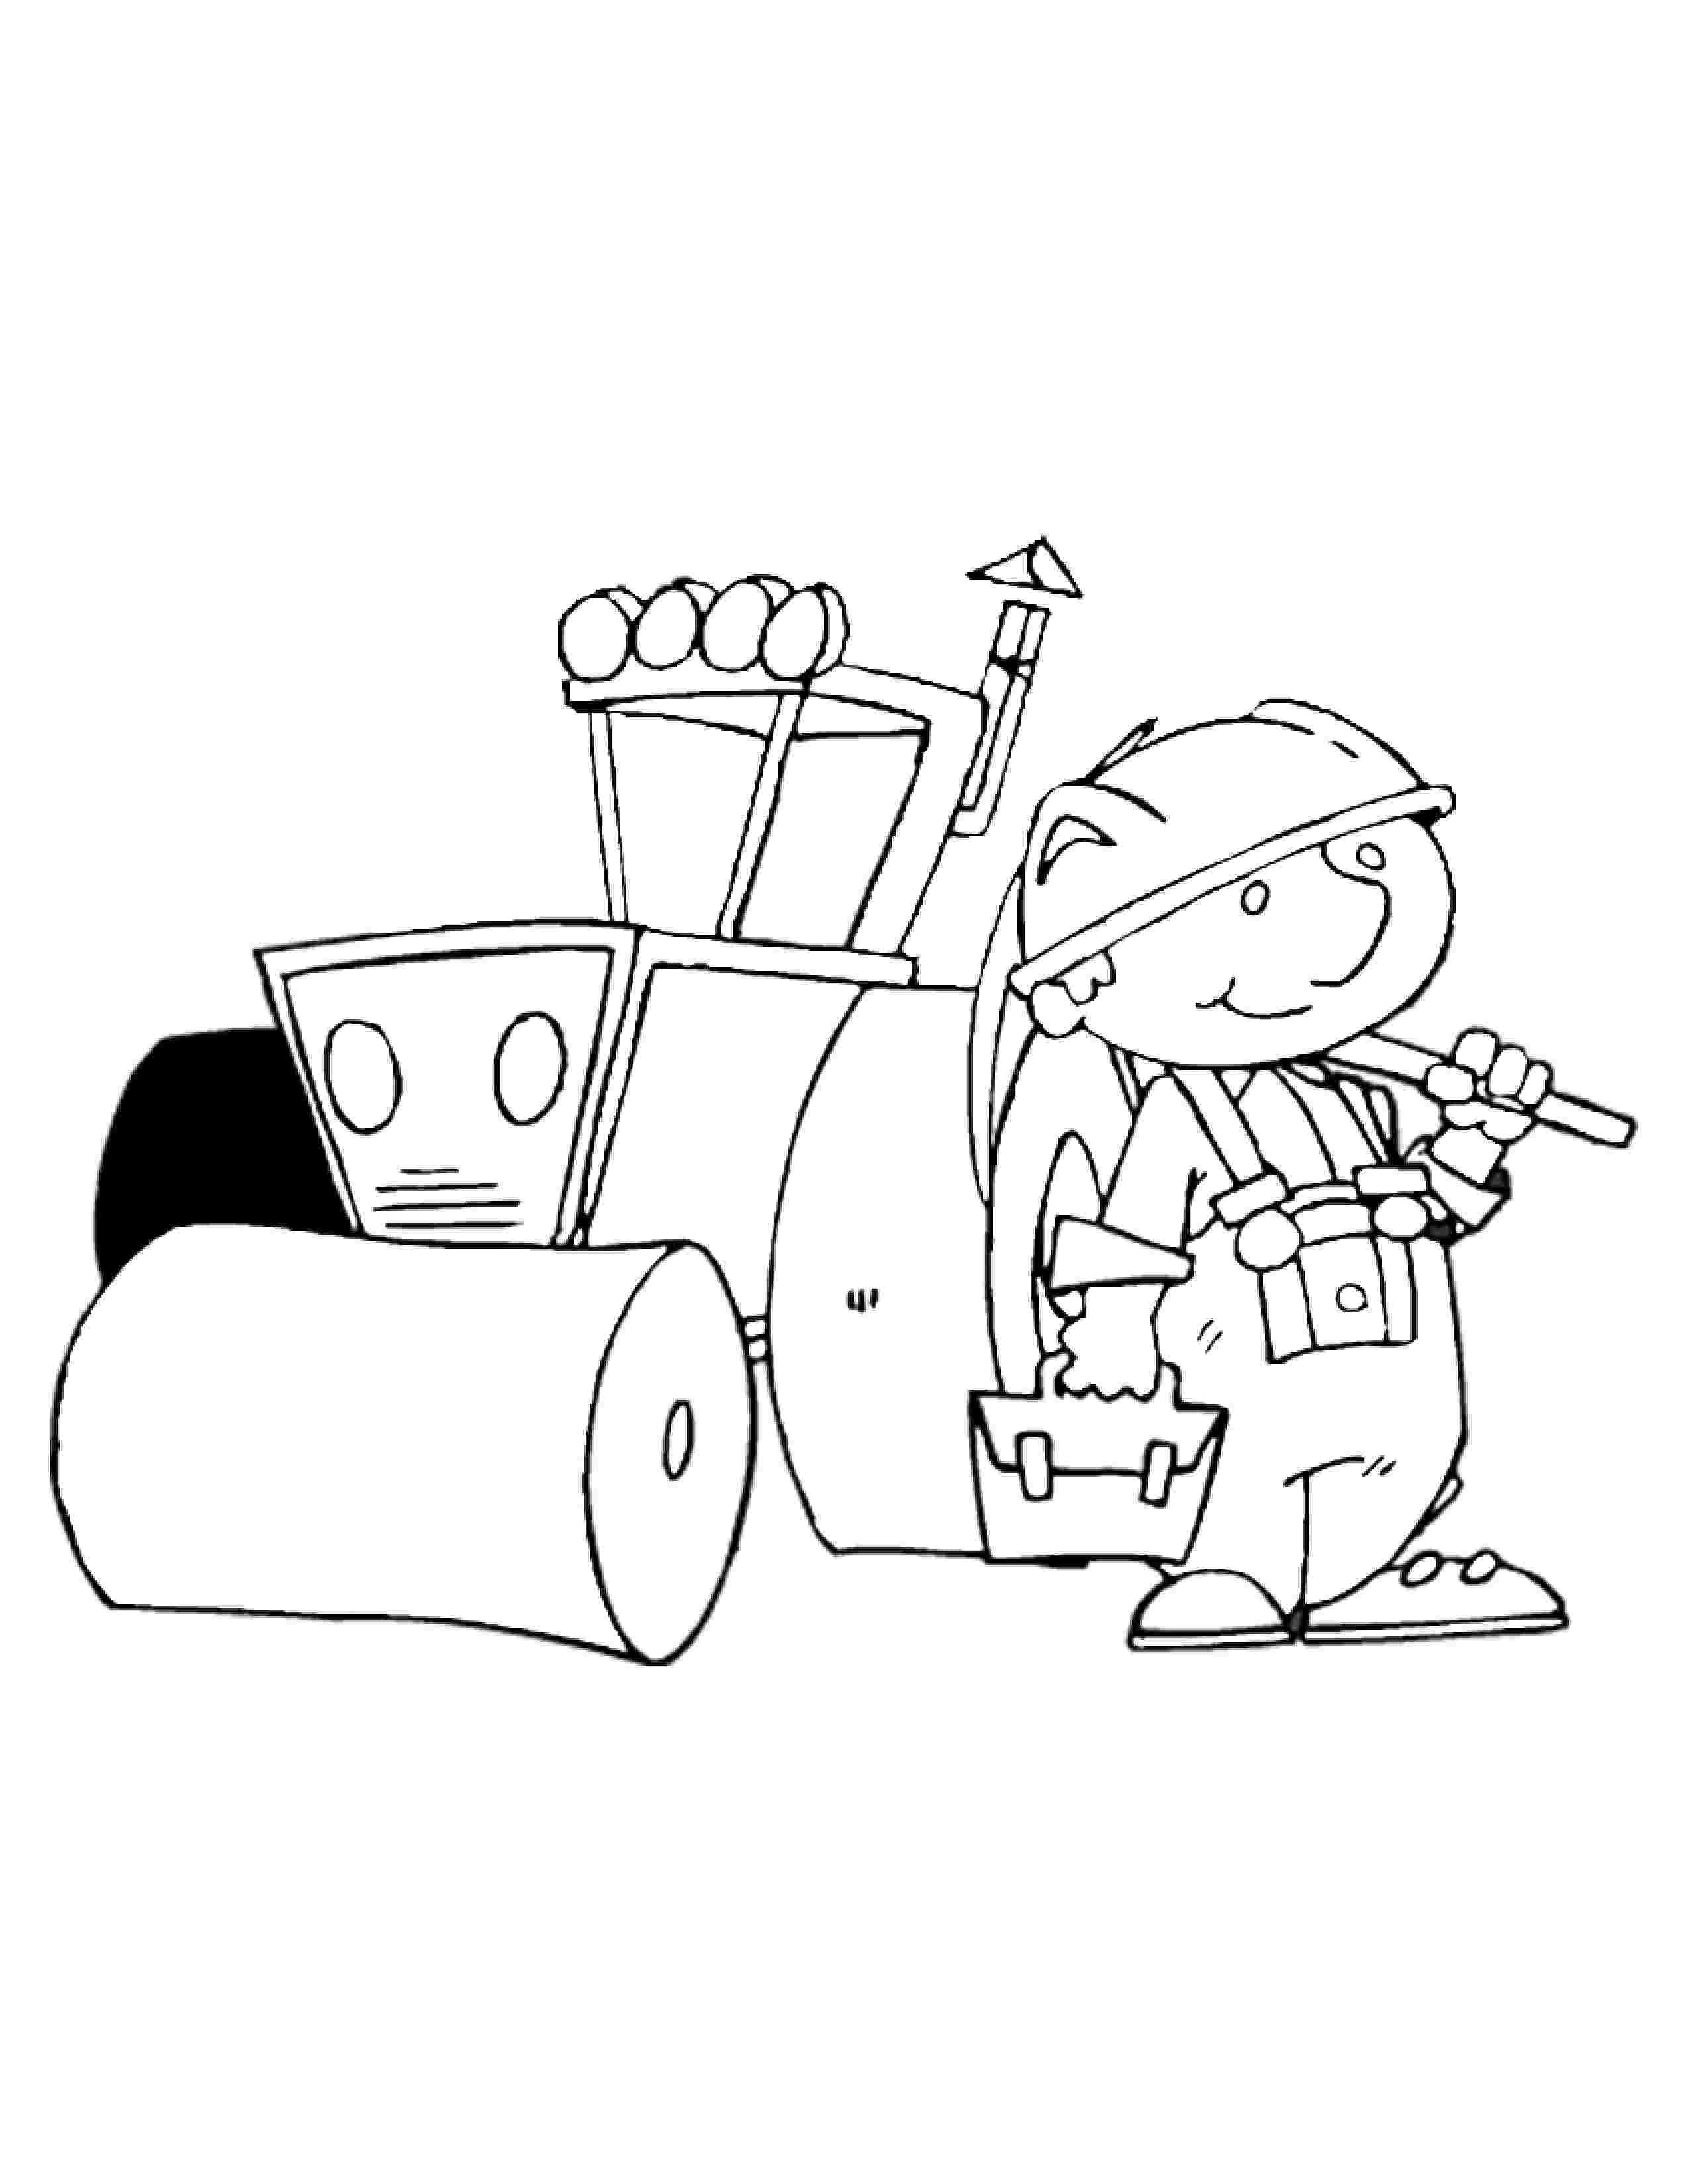 construction equipment coloring pages construction equipment coloring pages coloring home equipment construction pages coloring